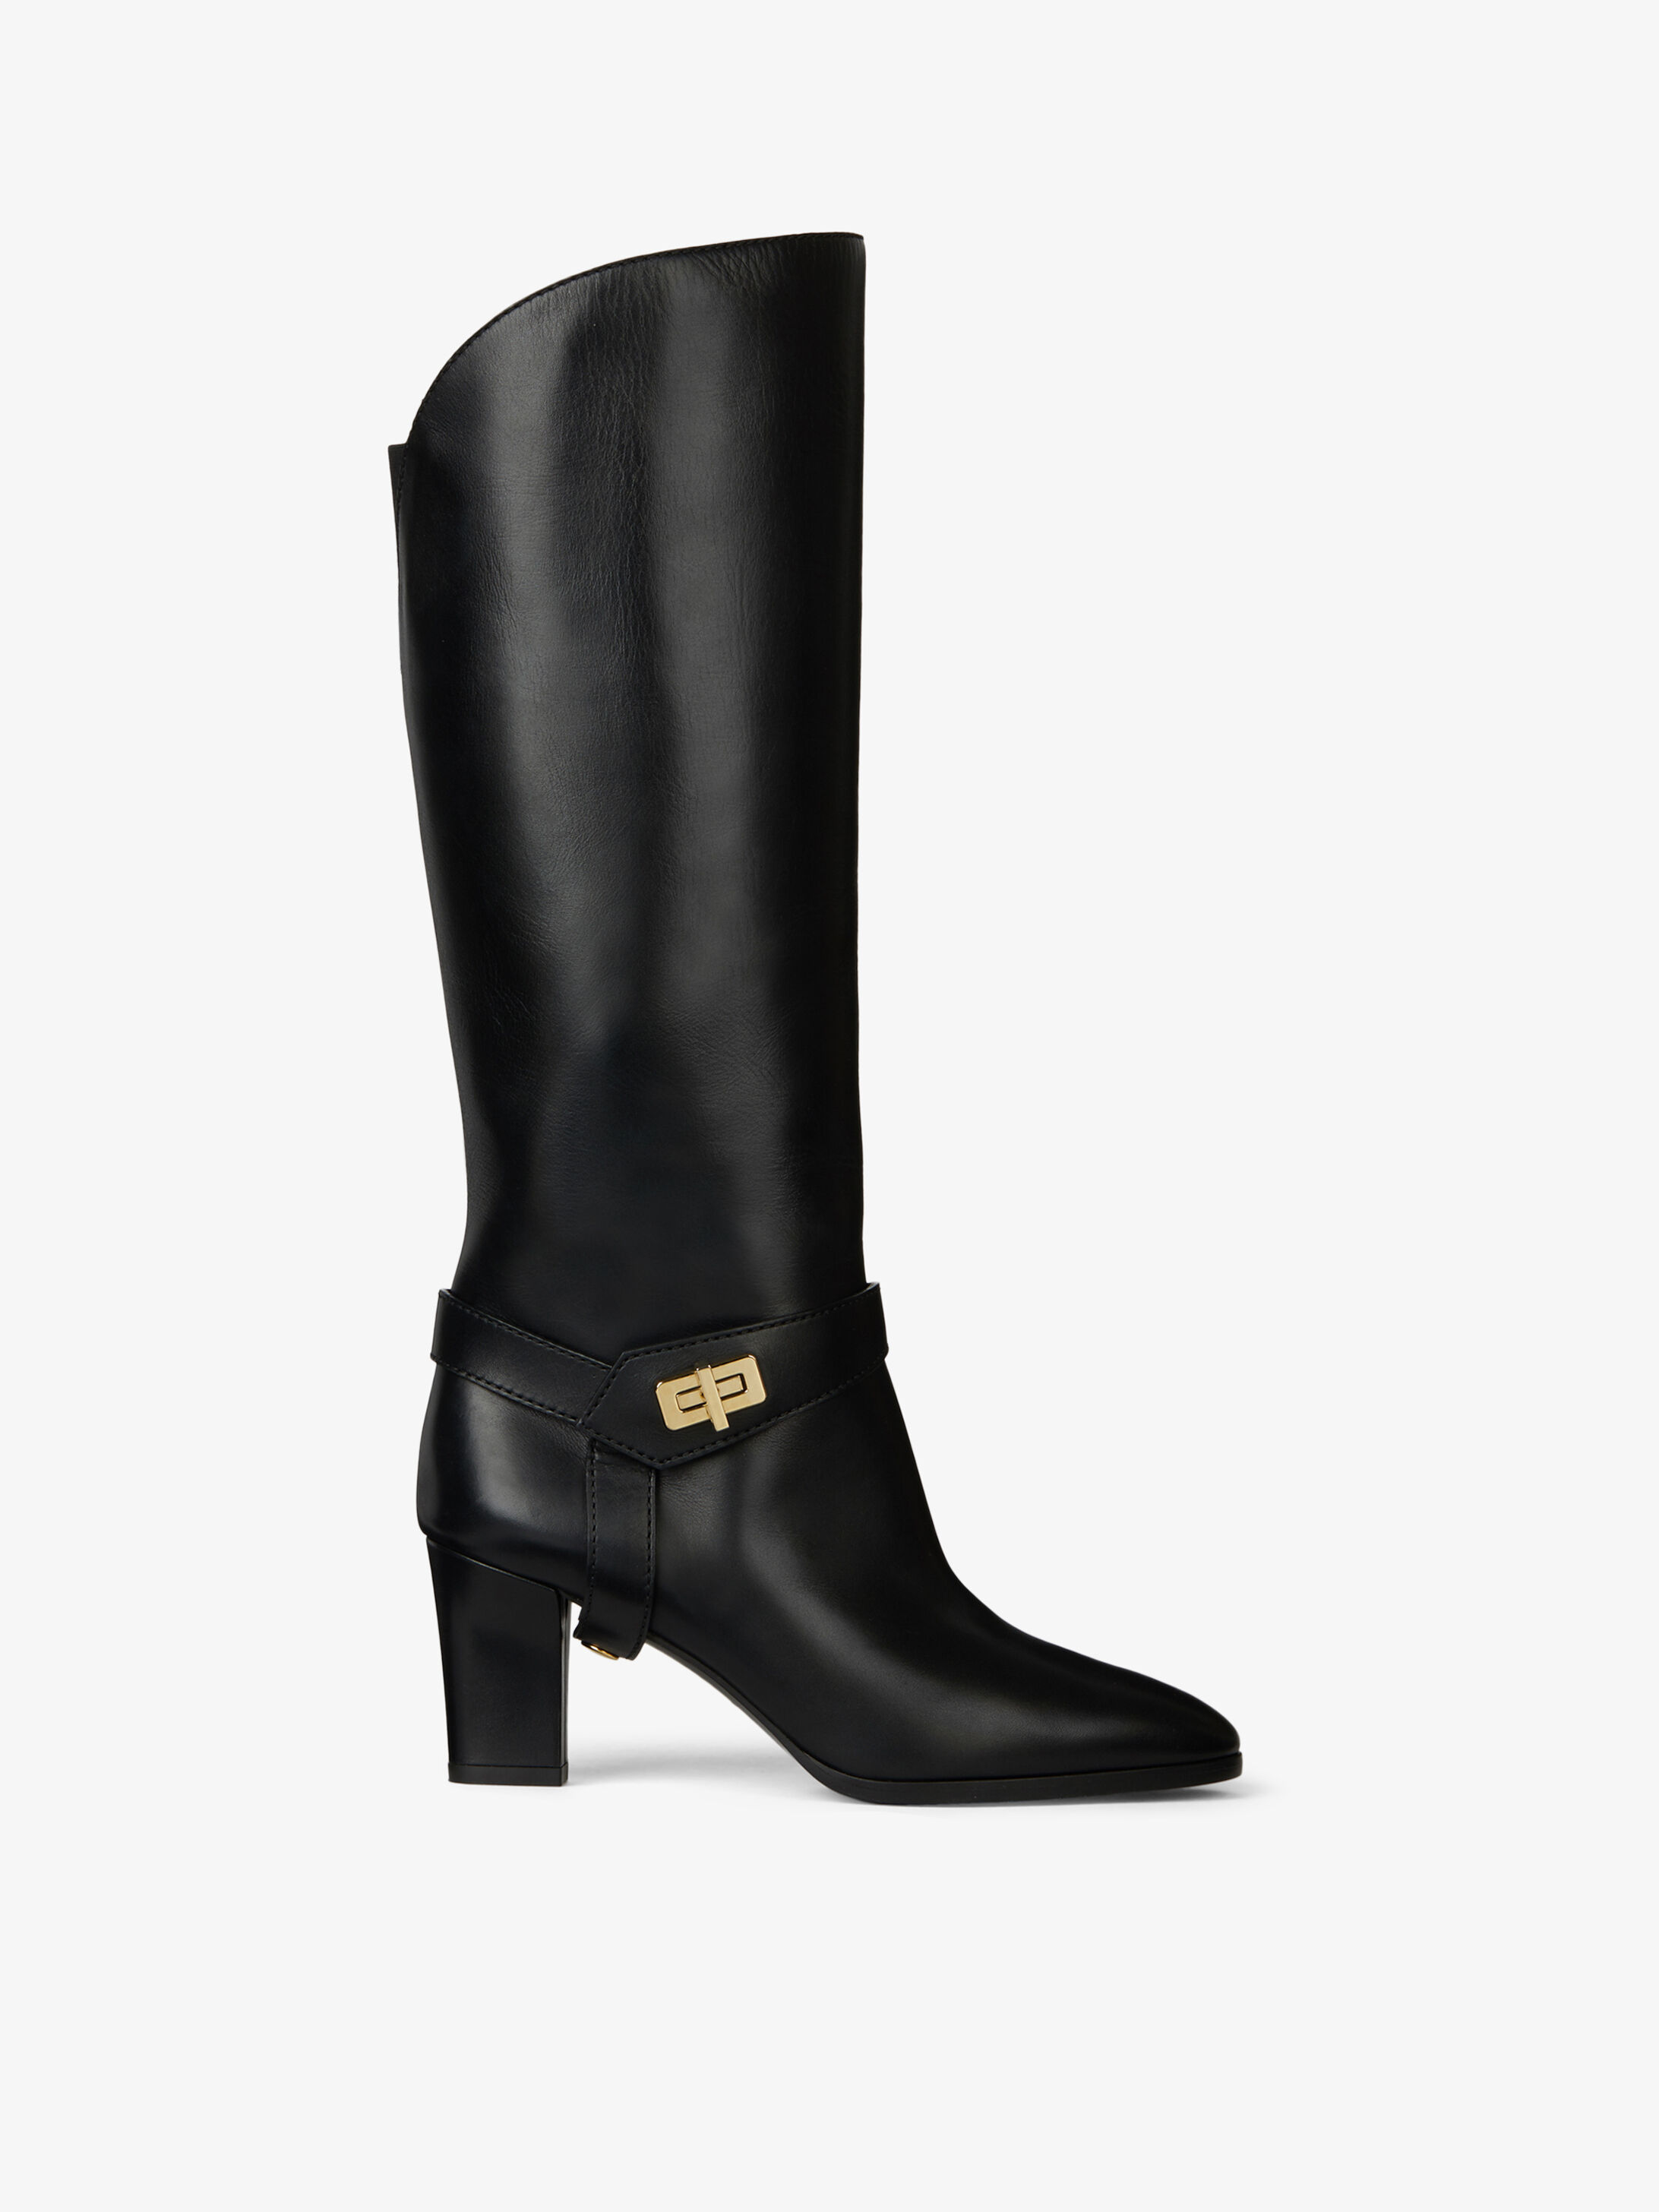 Women's Boots collection by Givenchy